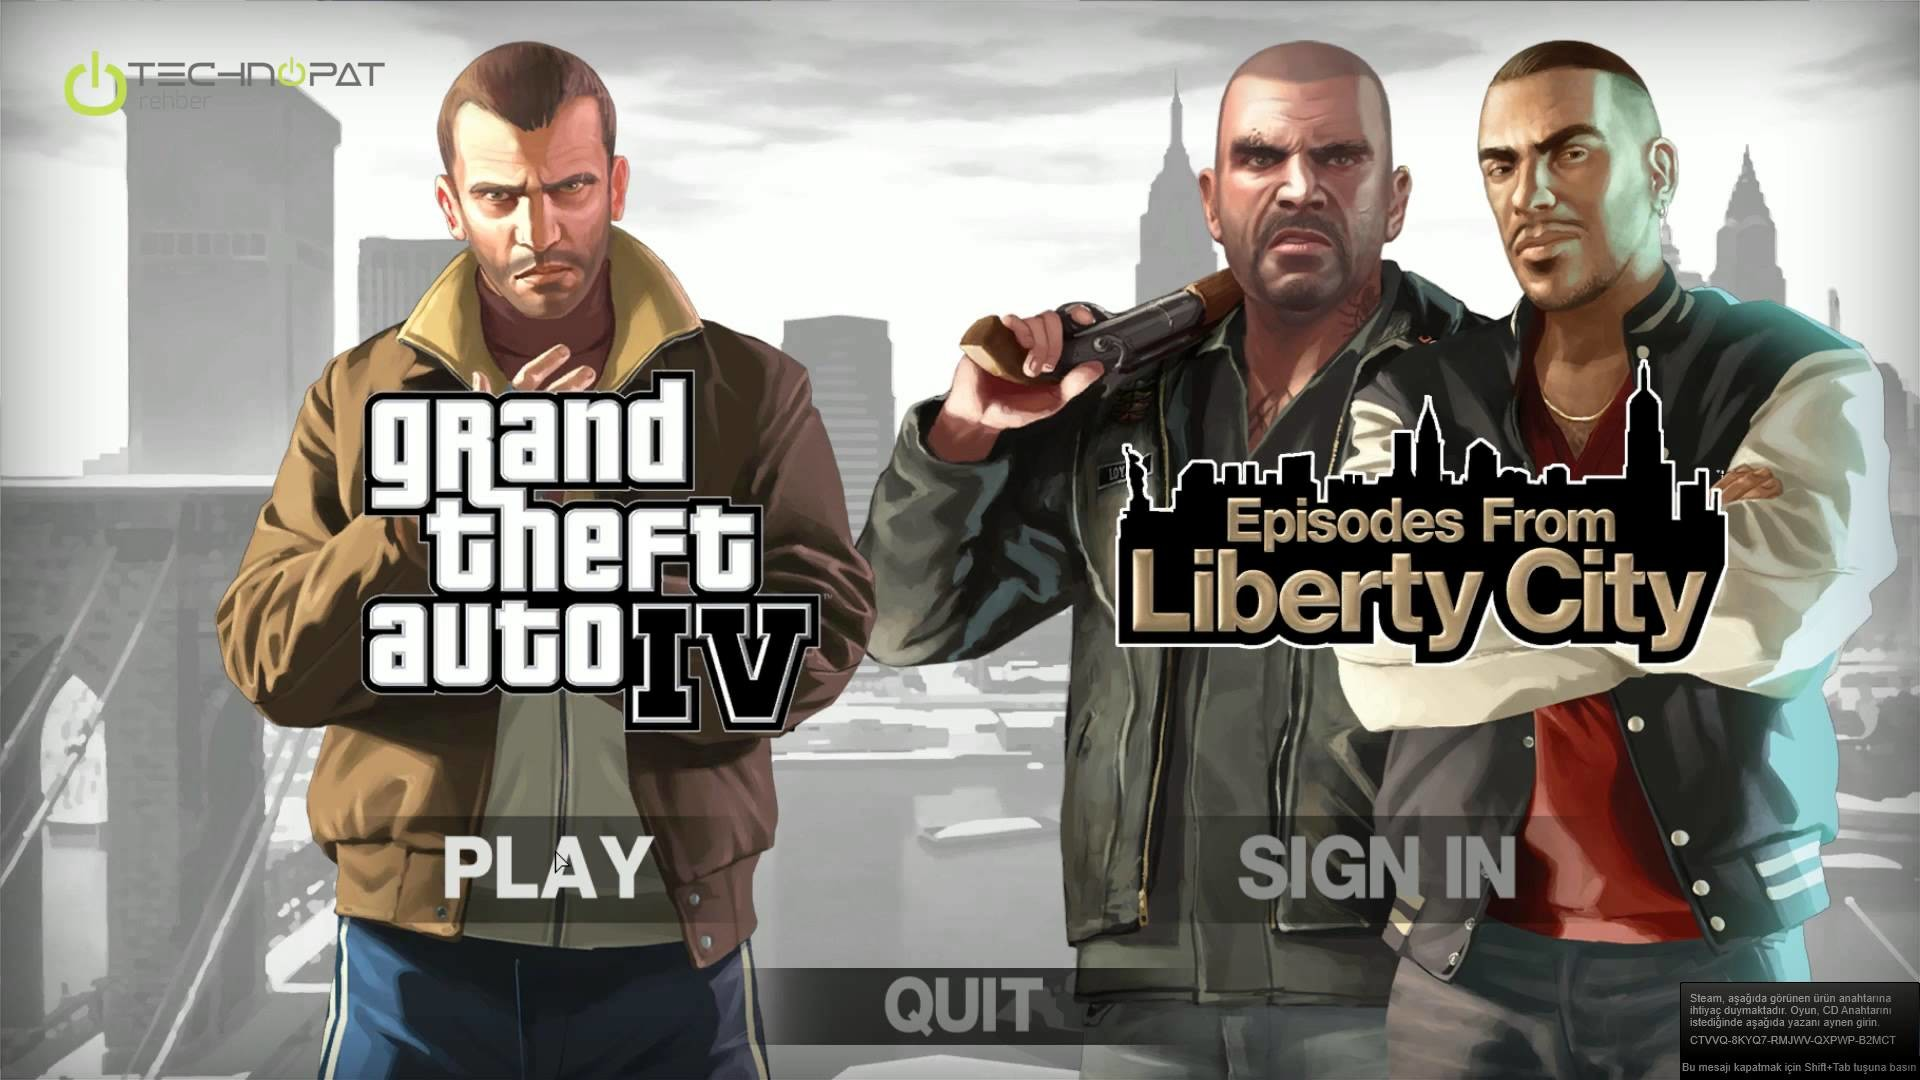 Res: 1920x1080, HDQ GTA IV Wallpapers, High Quality, Wallpapers and Pictures – download for  free